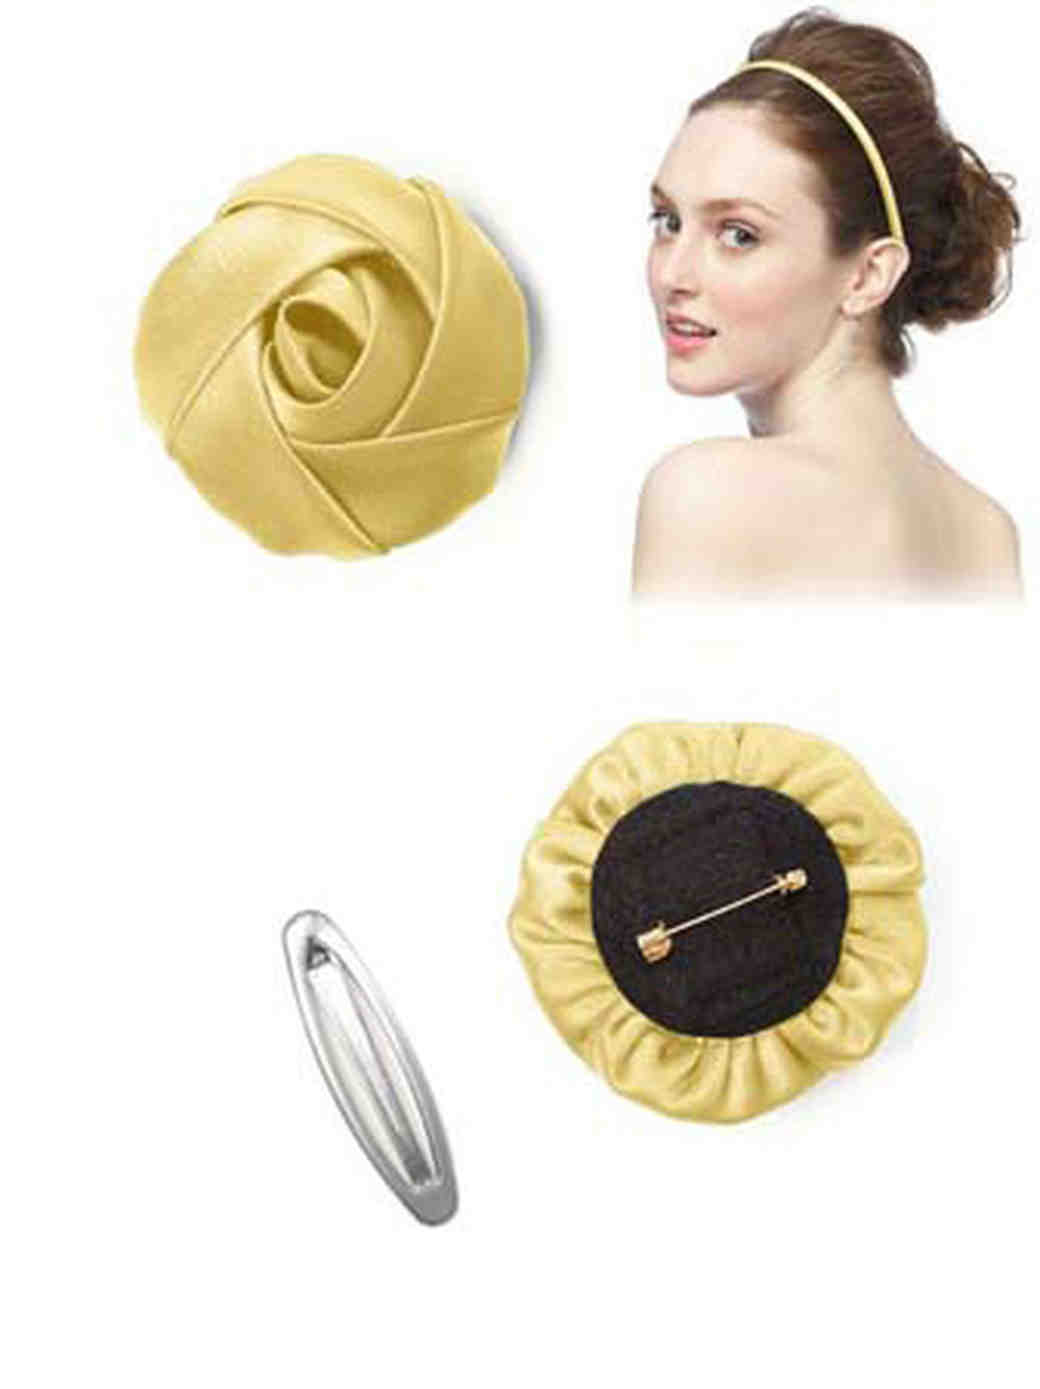 dessy-group-inspiration-hair-accessories-1.jpg